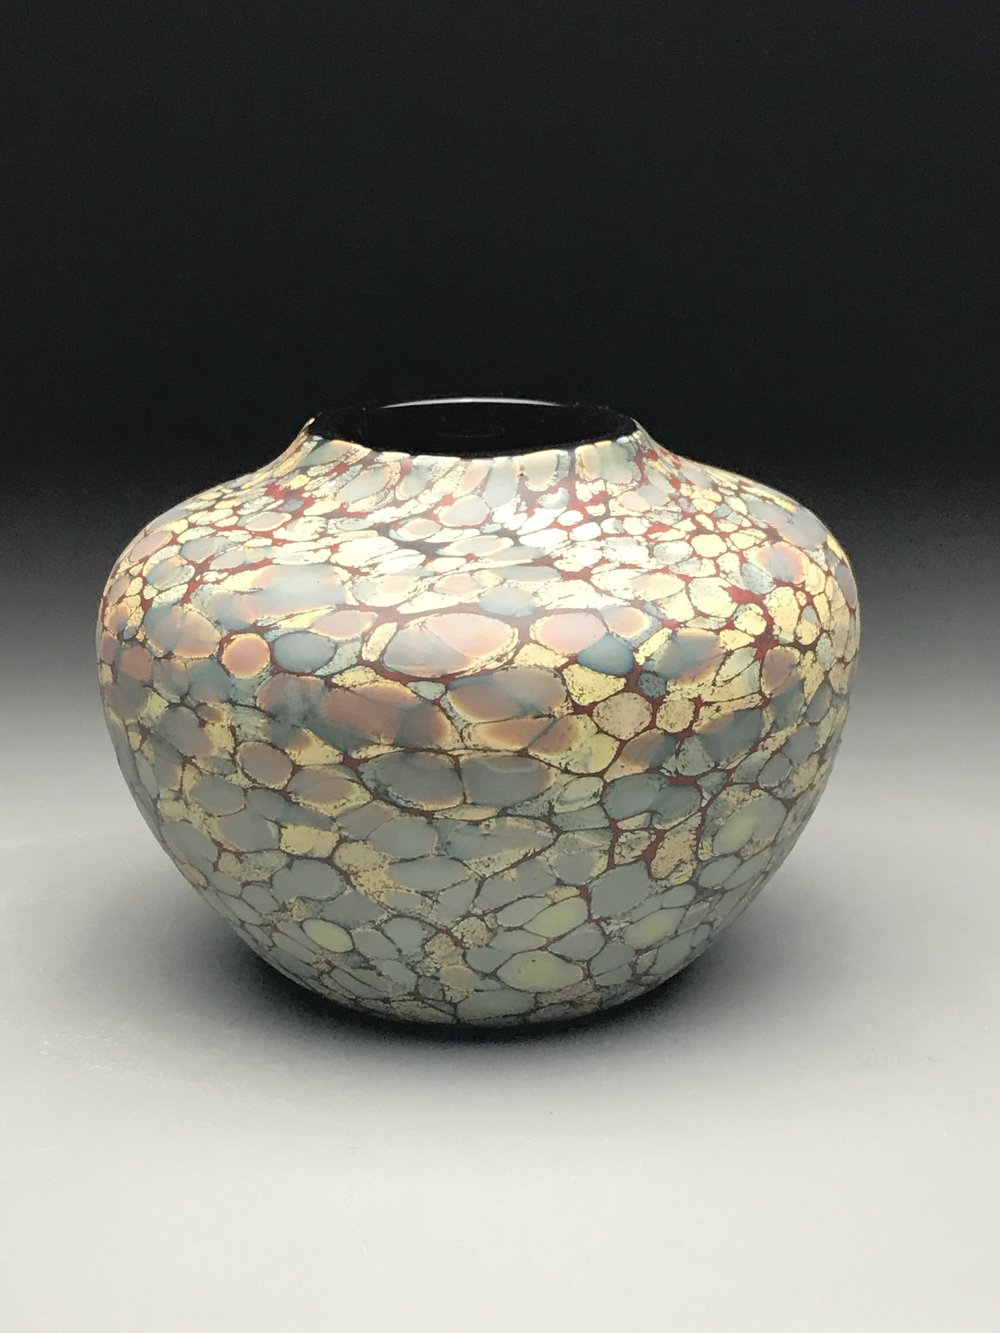 Thomas Spake | Native Vessel | Handblown Glass